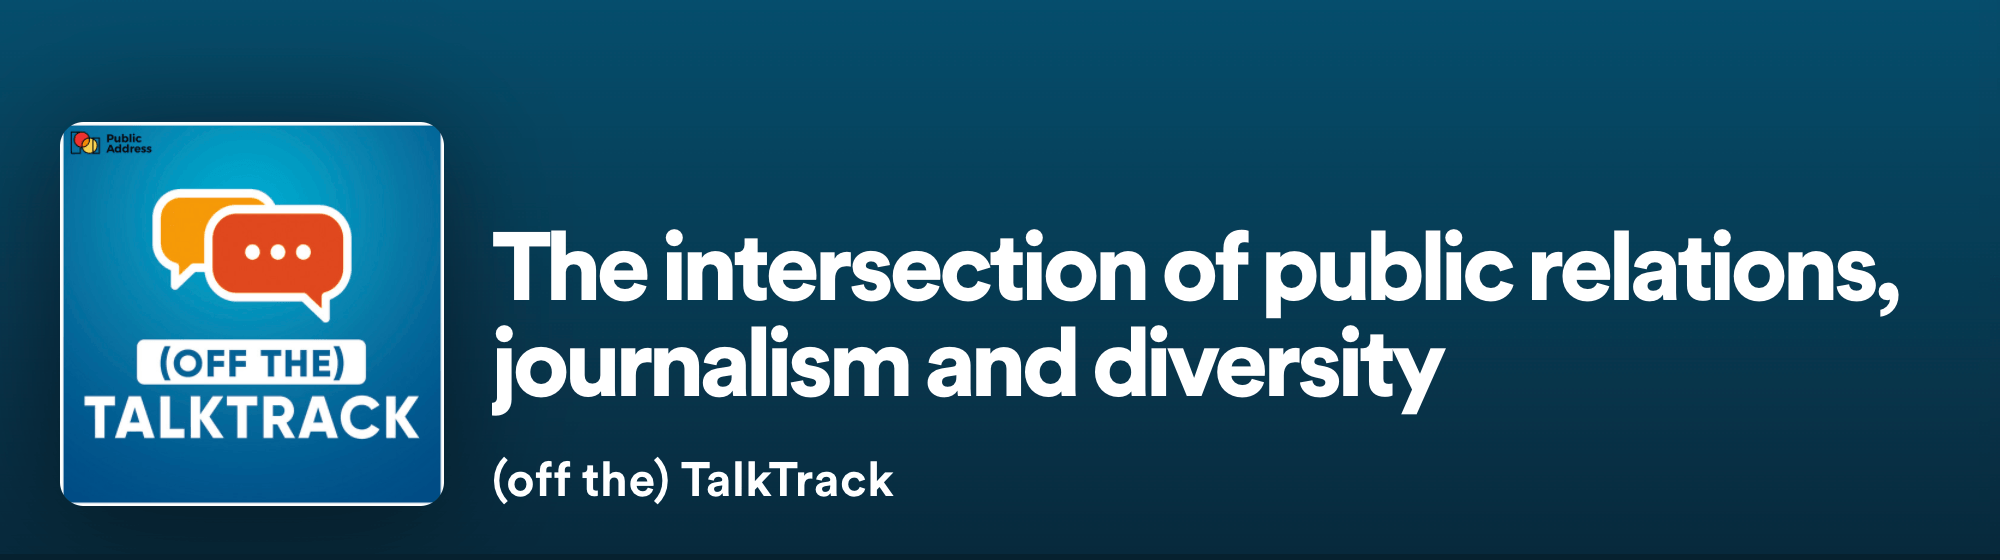 Podcast: The intersection of public relations, journalism and diversity